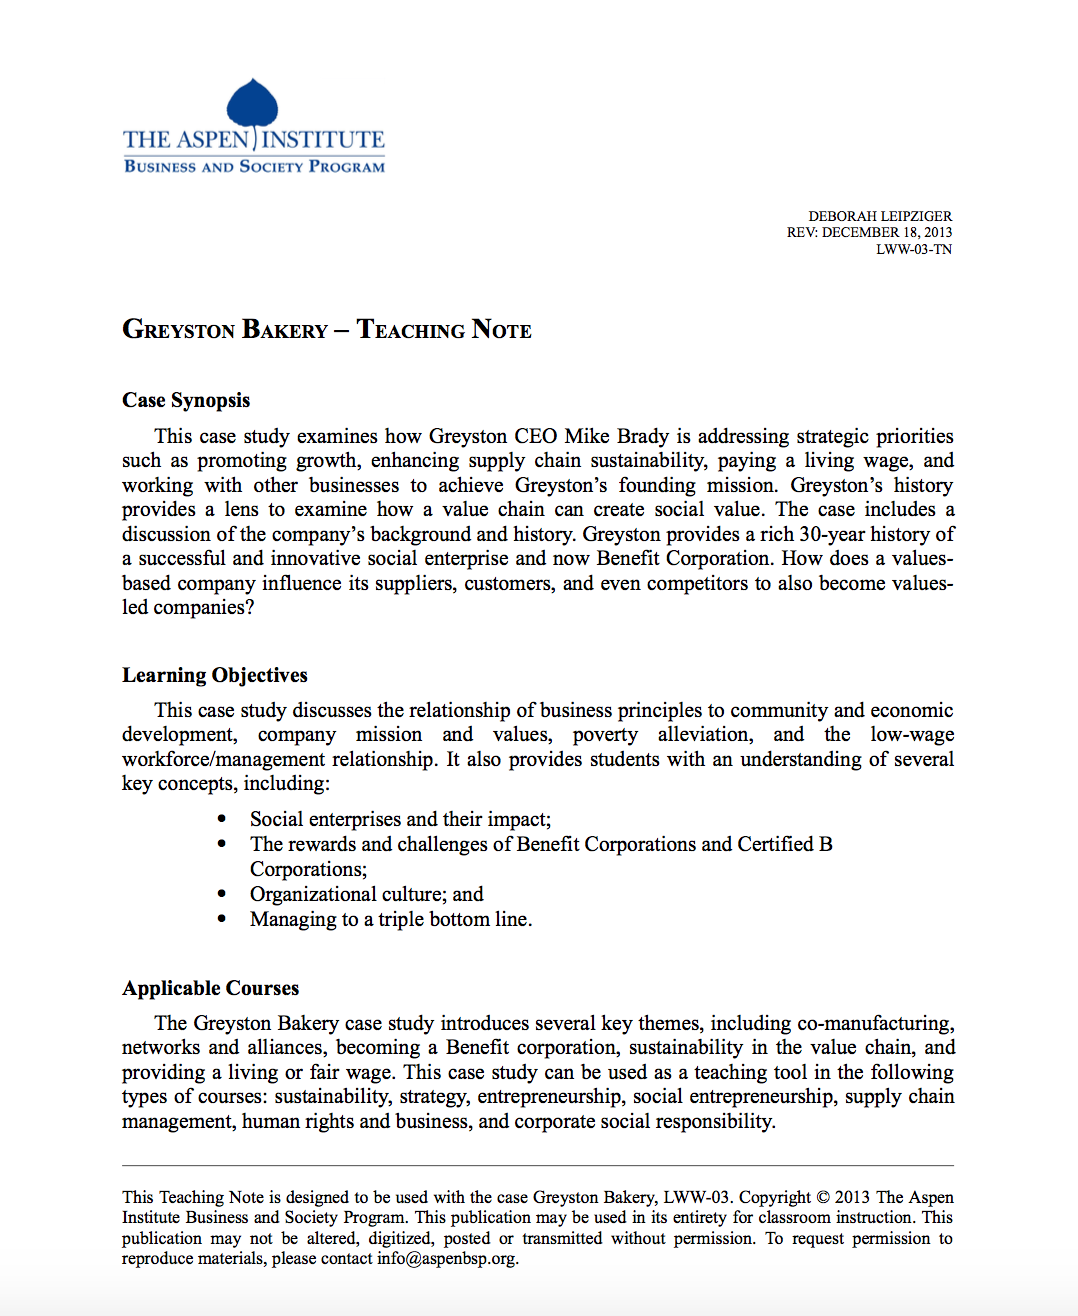 Greyston Bakery — Teaching Note